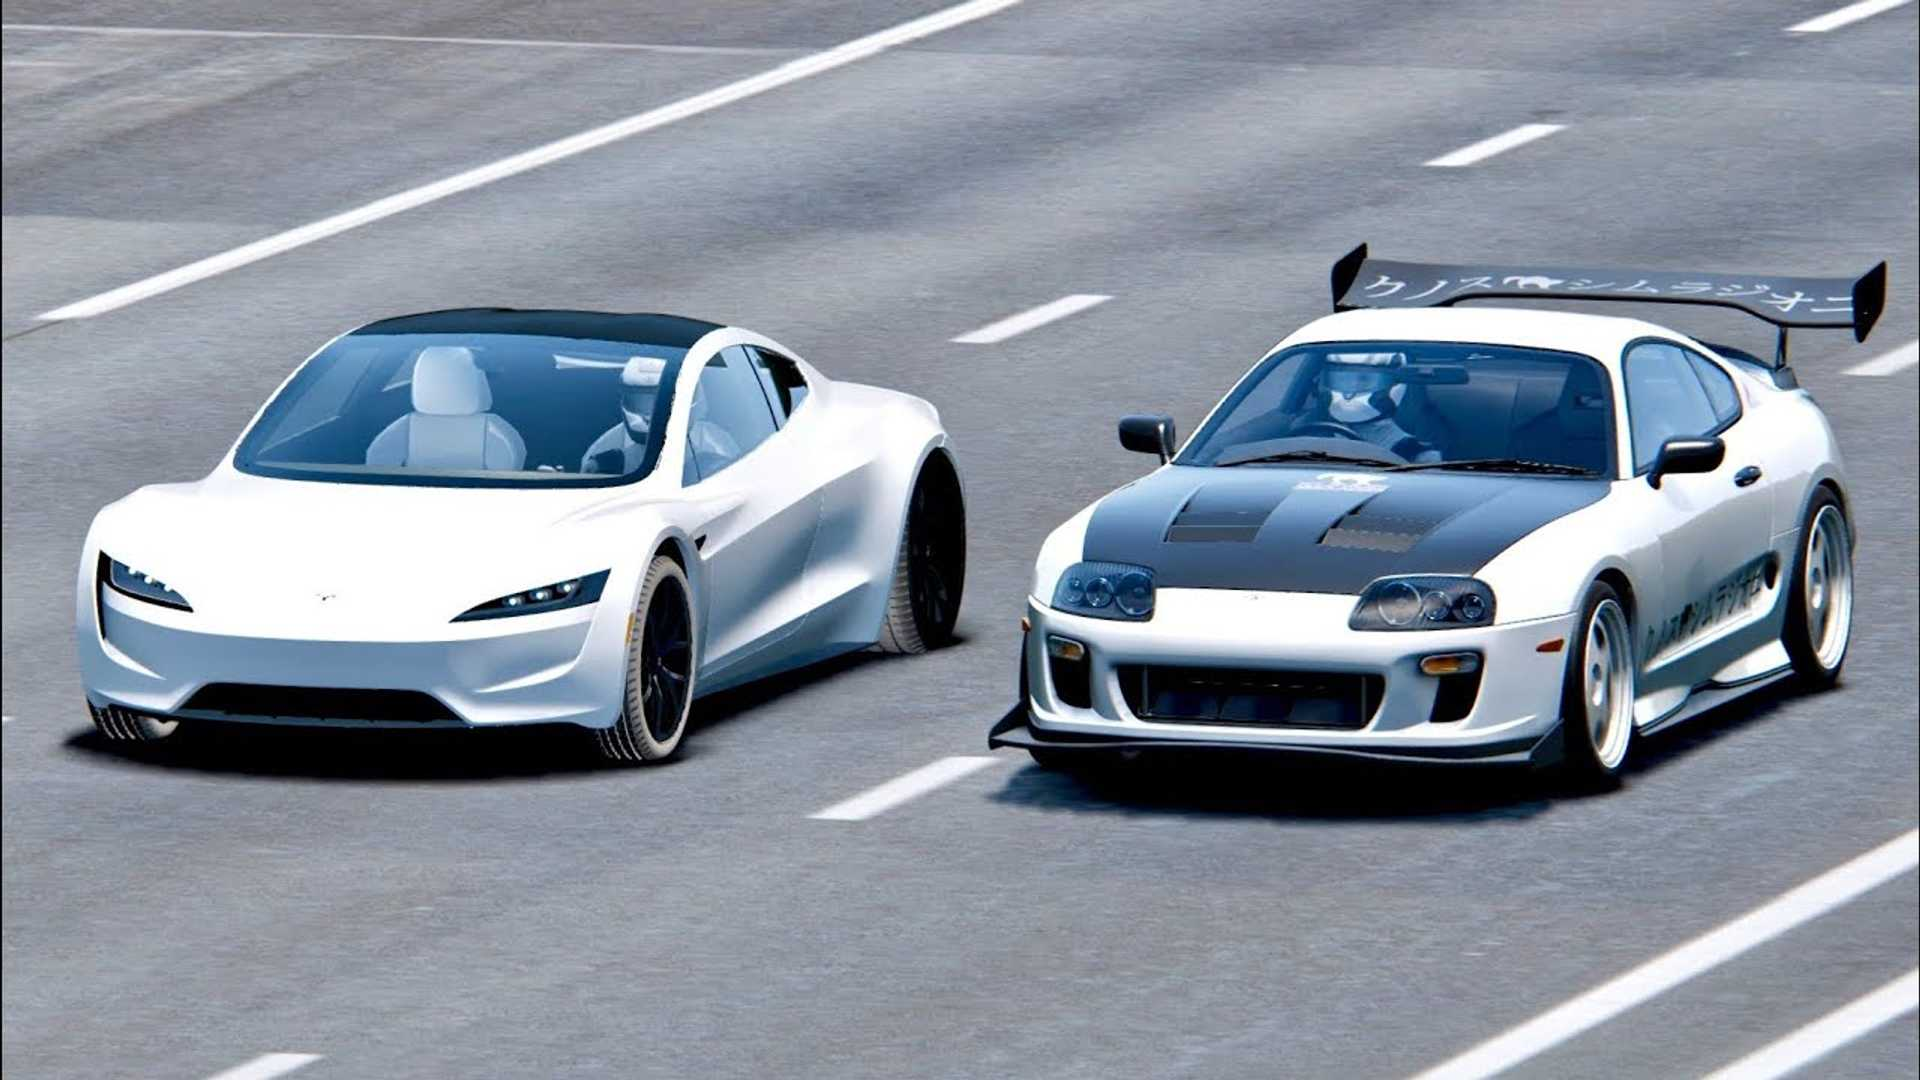 Watch New Tesla Roadster Take Down Toyota Supra Simulated Race Video